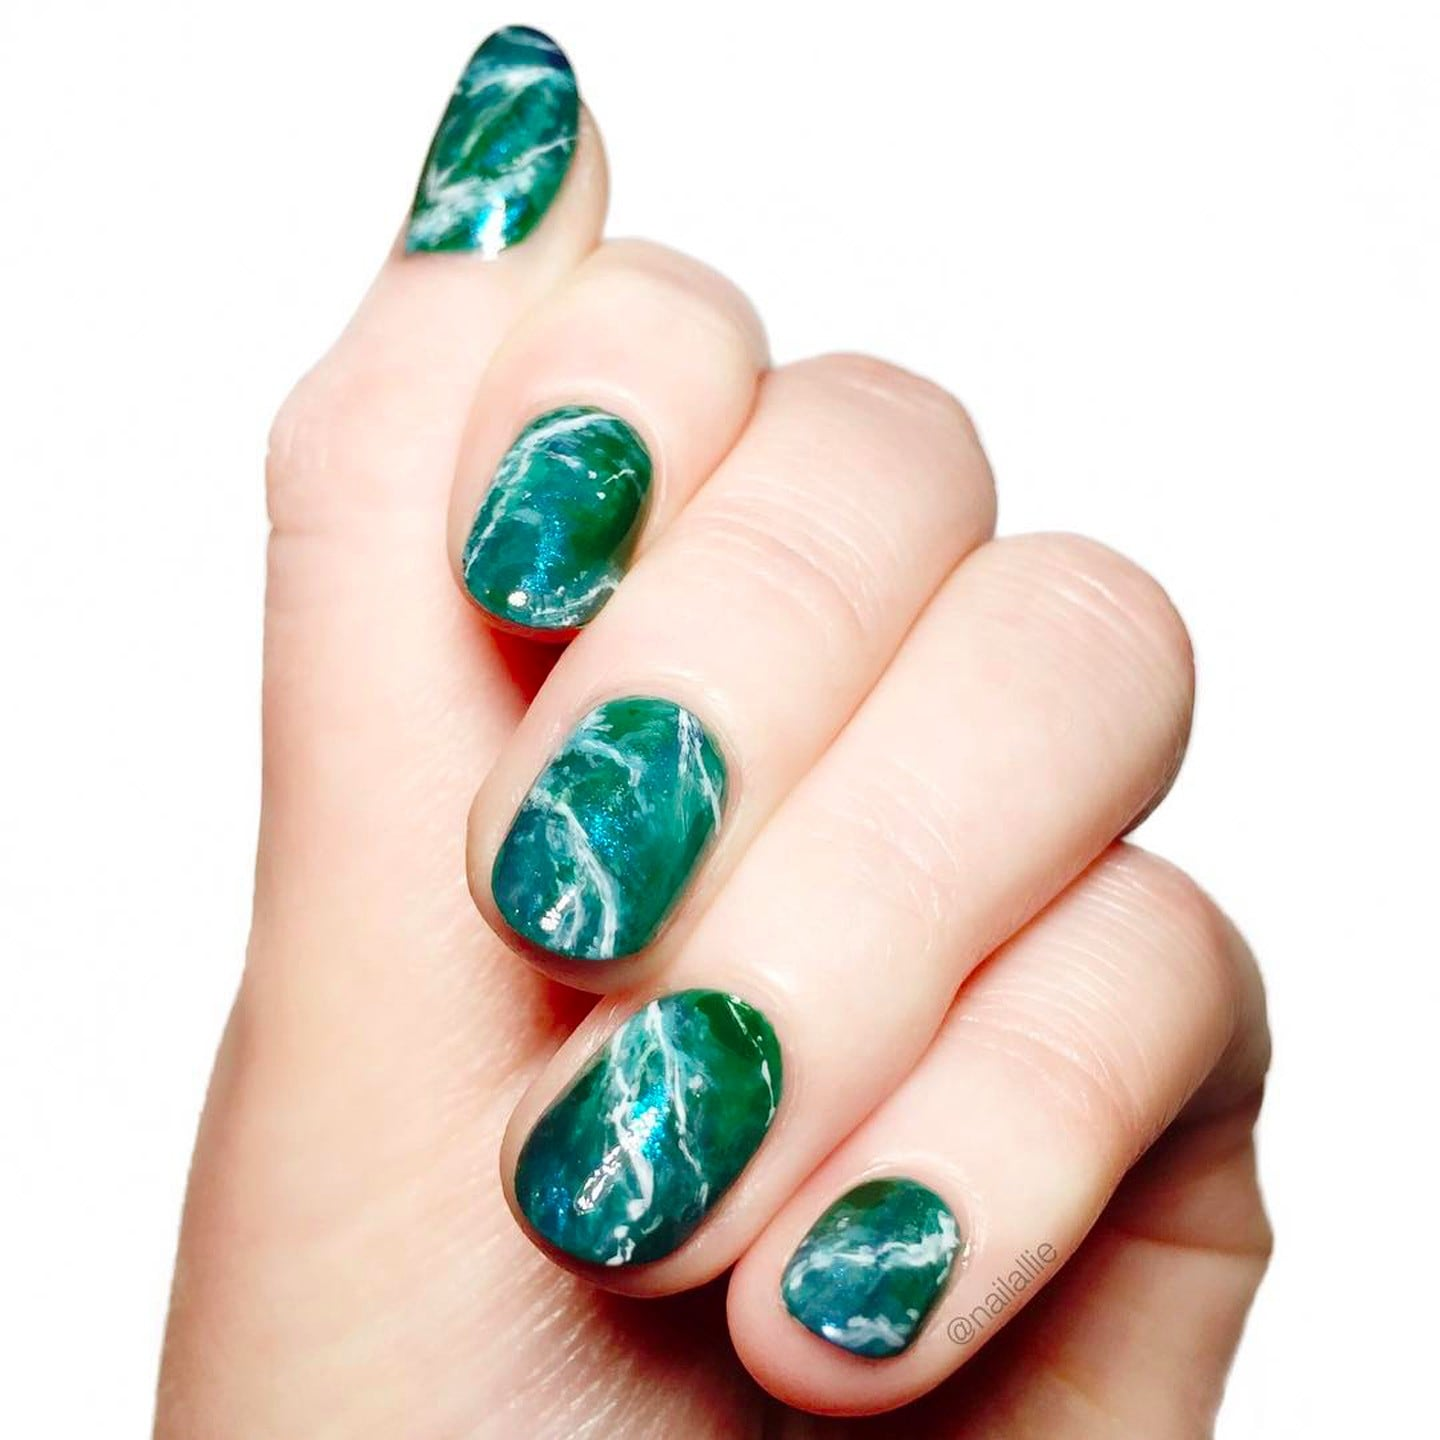 Ocean-Inspired Marble Nails | POPSUGAR Beauty